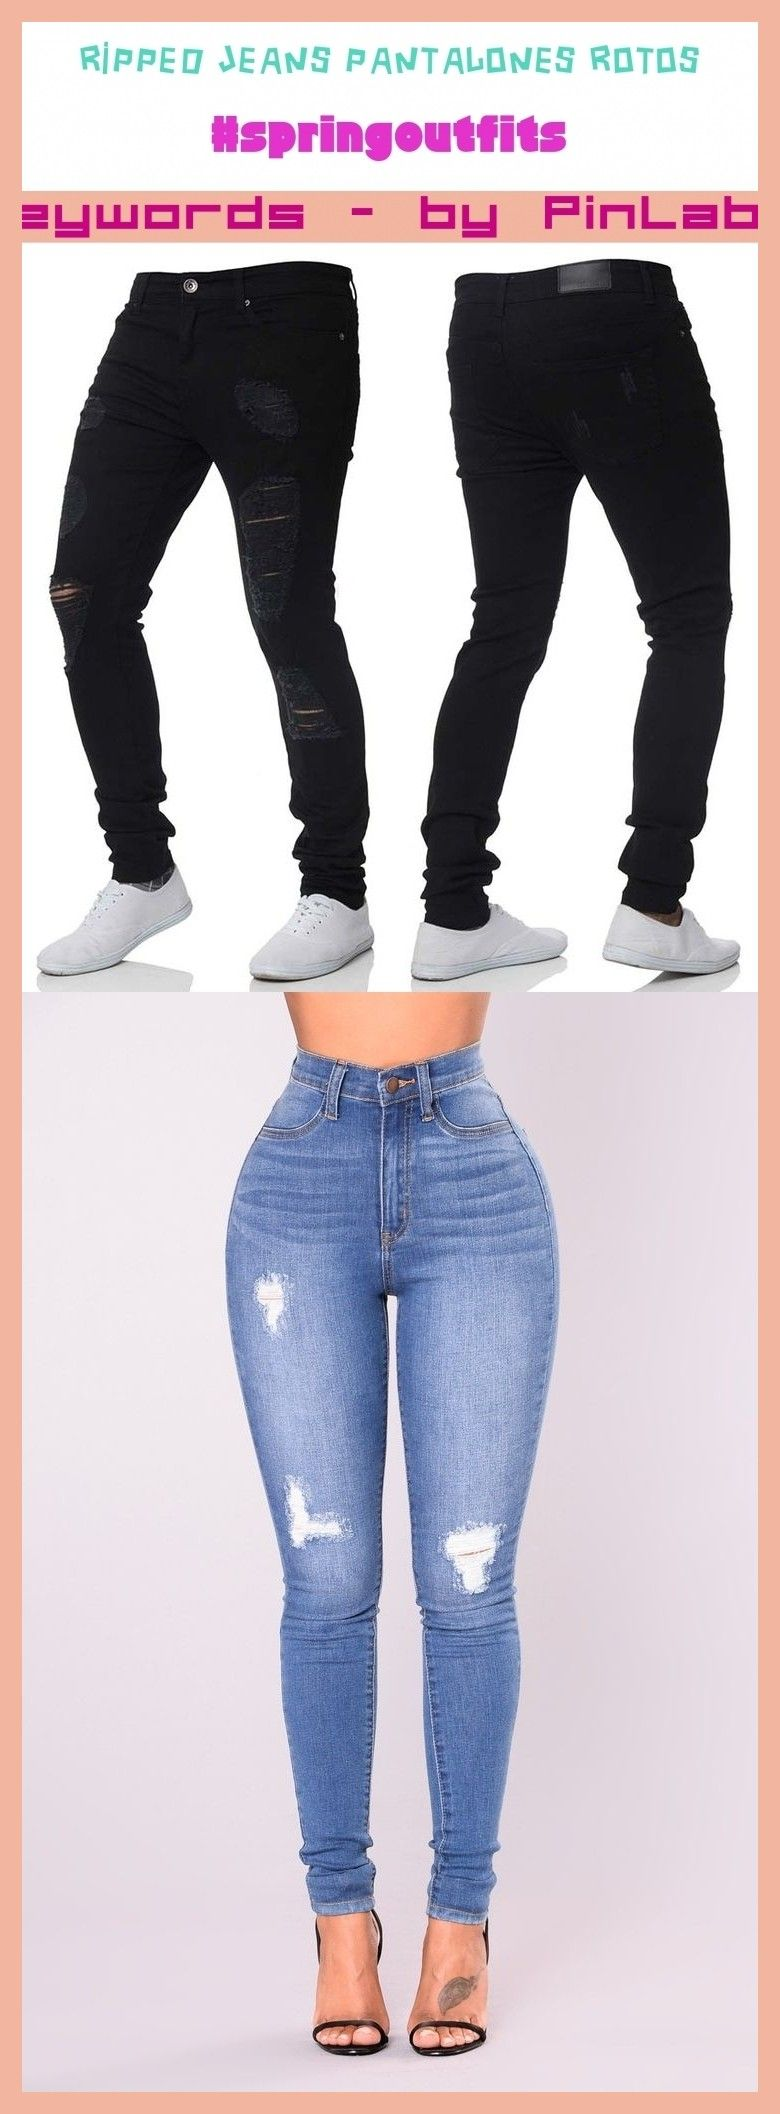 Photo of Ripped jeans pantalones rotos #ripped #jeans #pantalones #rotos #zerrissene